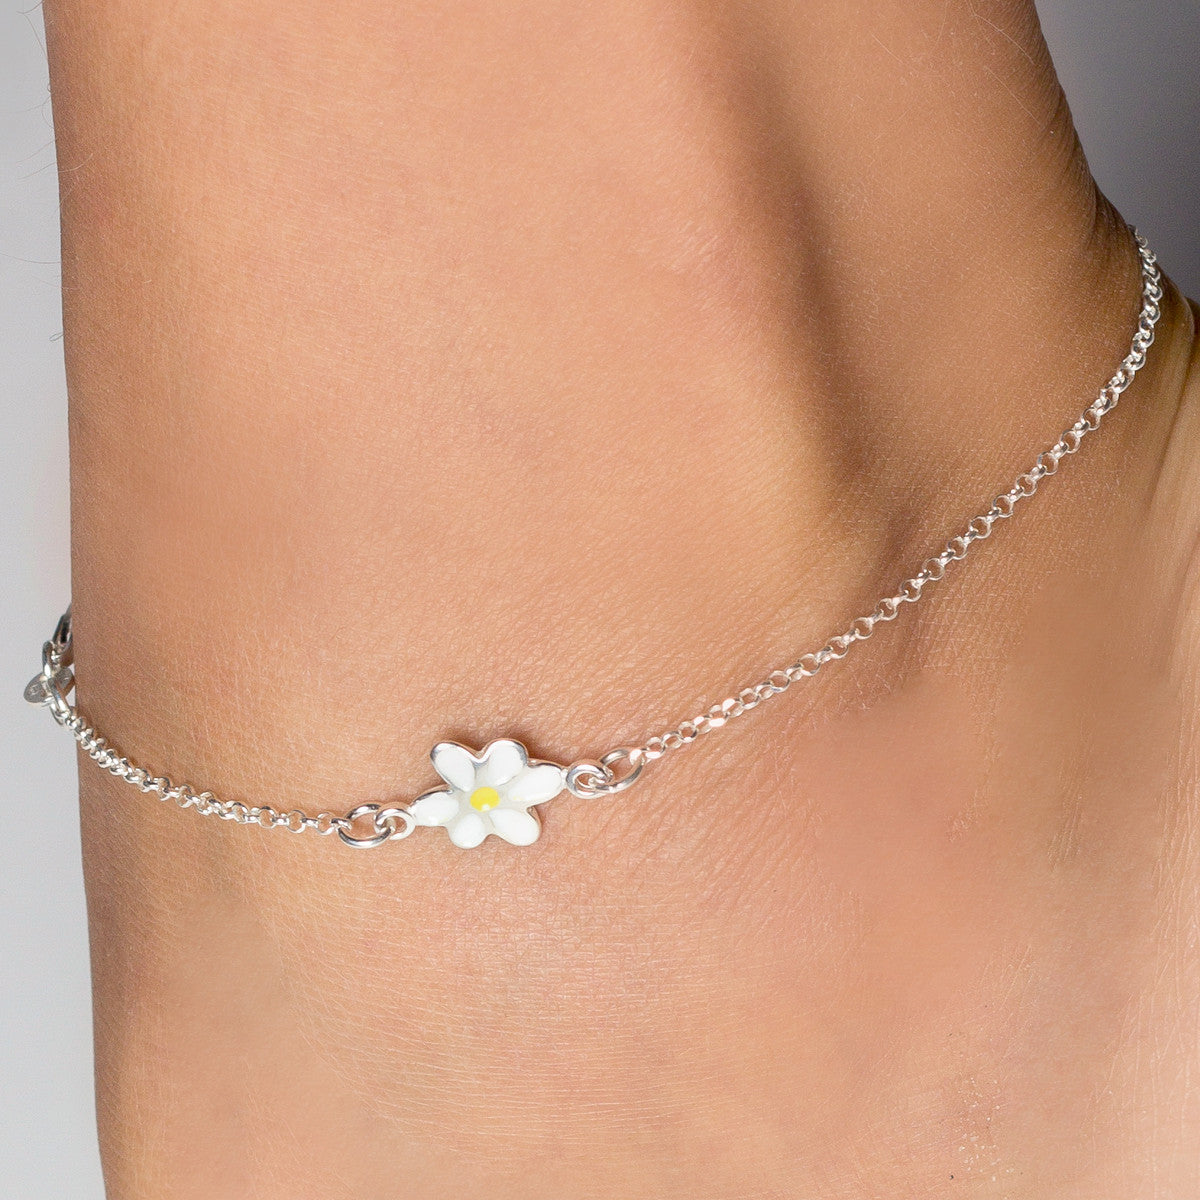 jewelry ankle i sliding avital link co chain anklet and anchor bracelet gold white ball